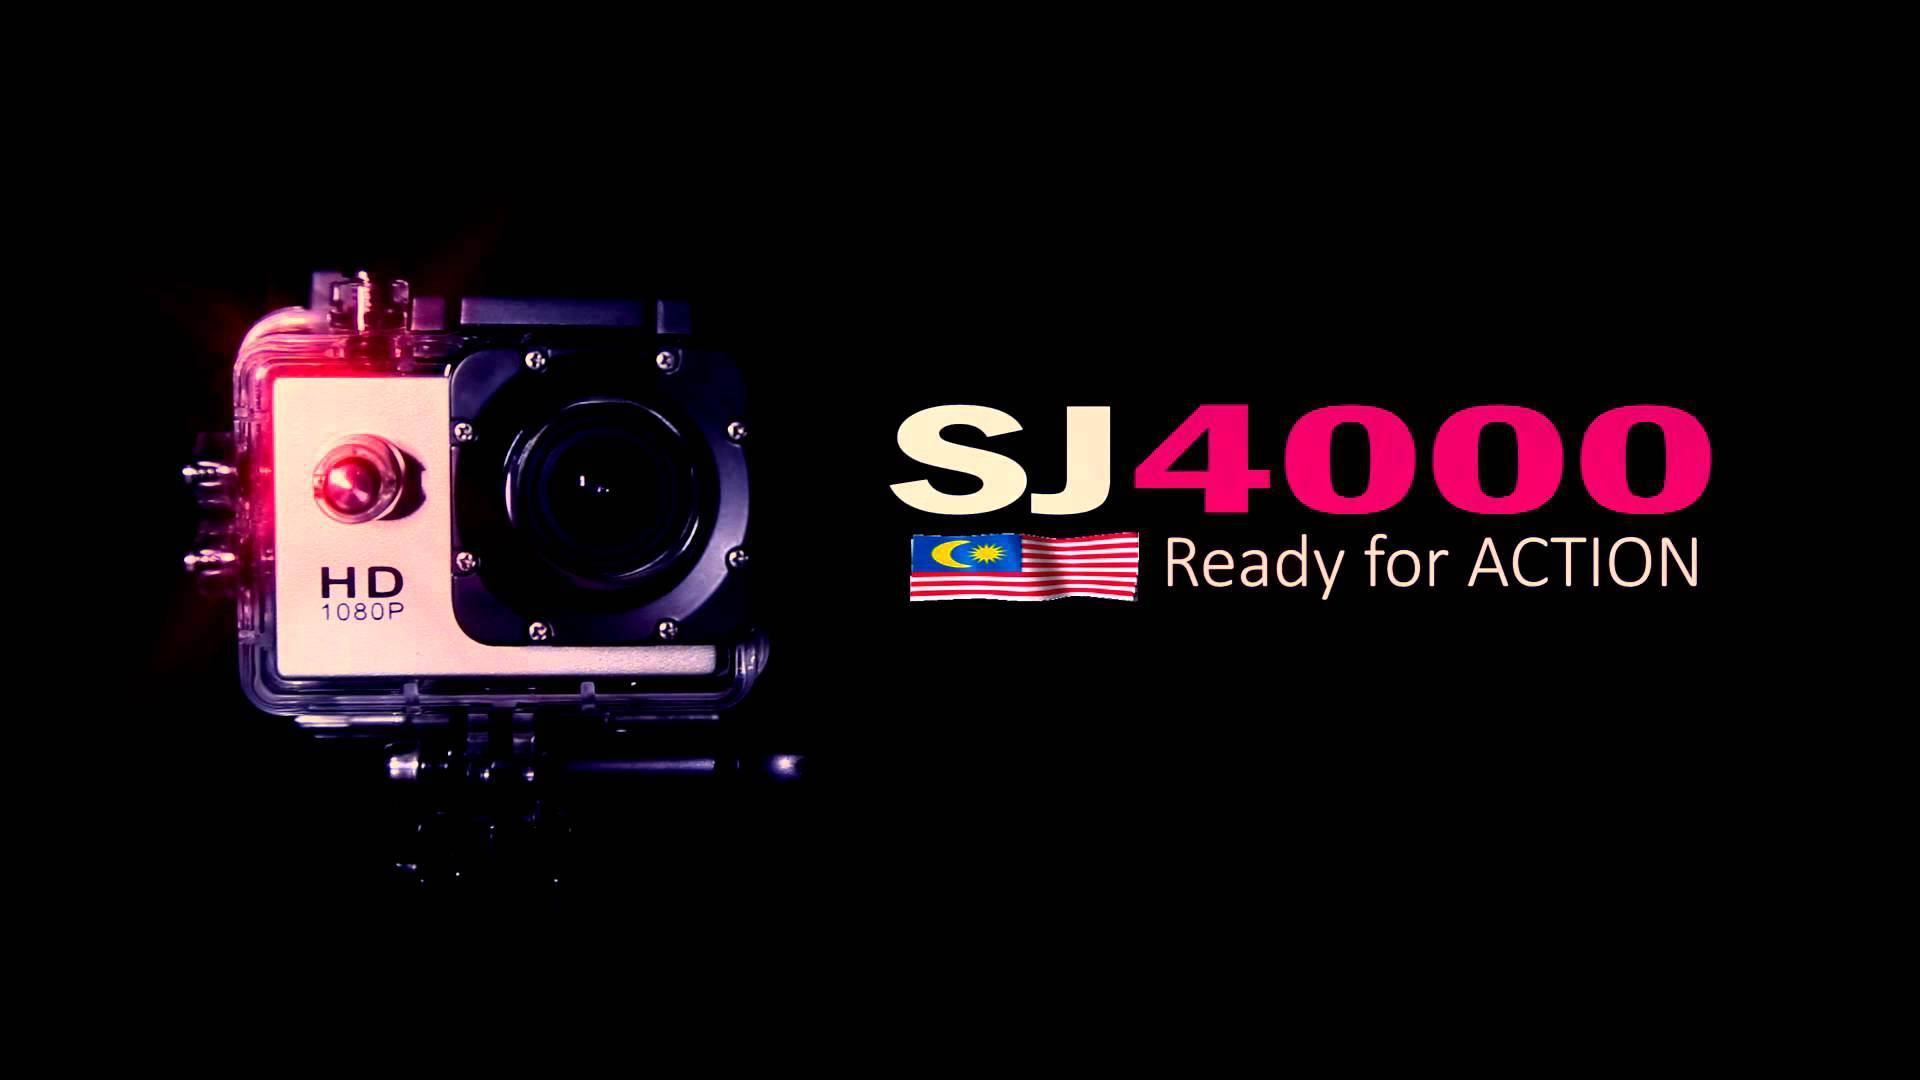 SJ4000 Ready for Action